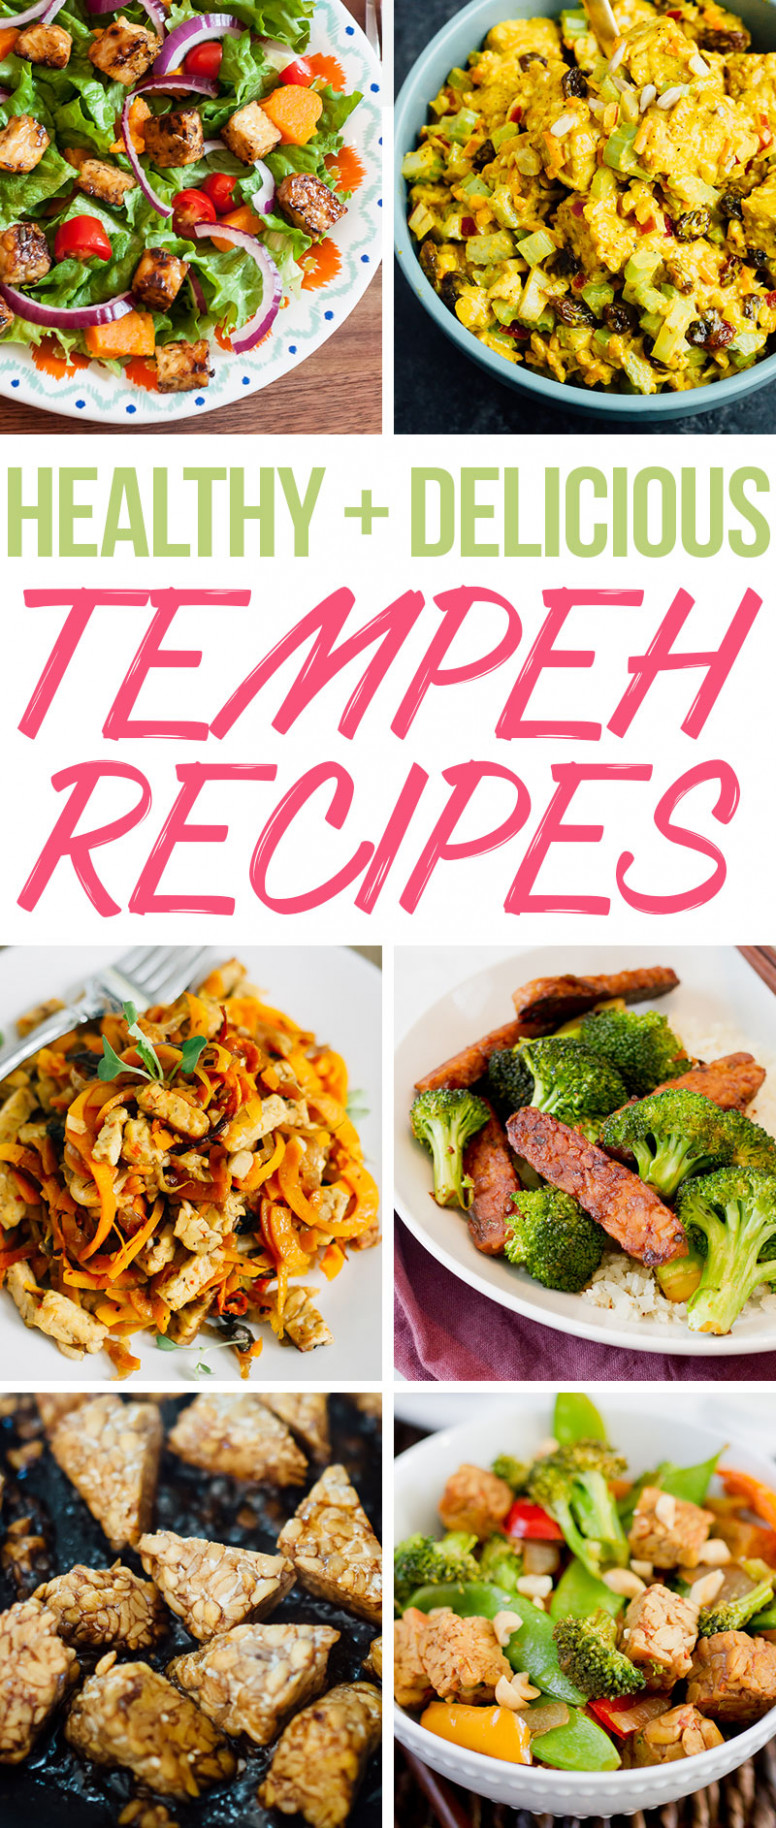 How To Cook Tempeh | Tempeh Recipes You'll Love - Recipes That Are Healthy And Easy To Make